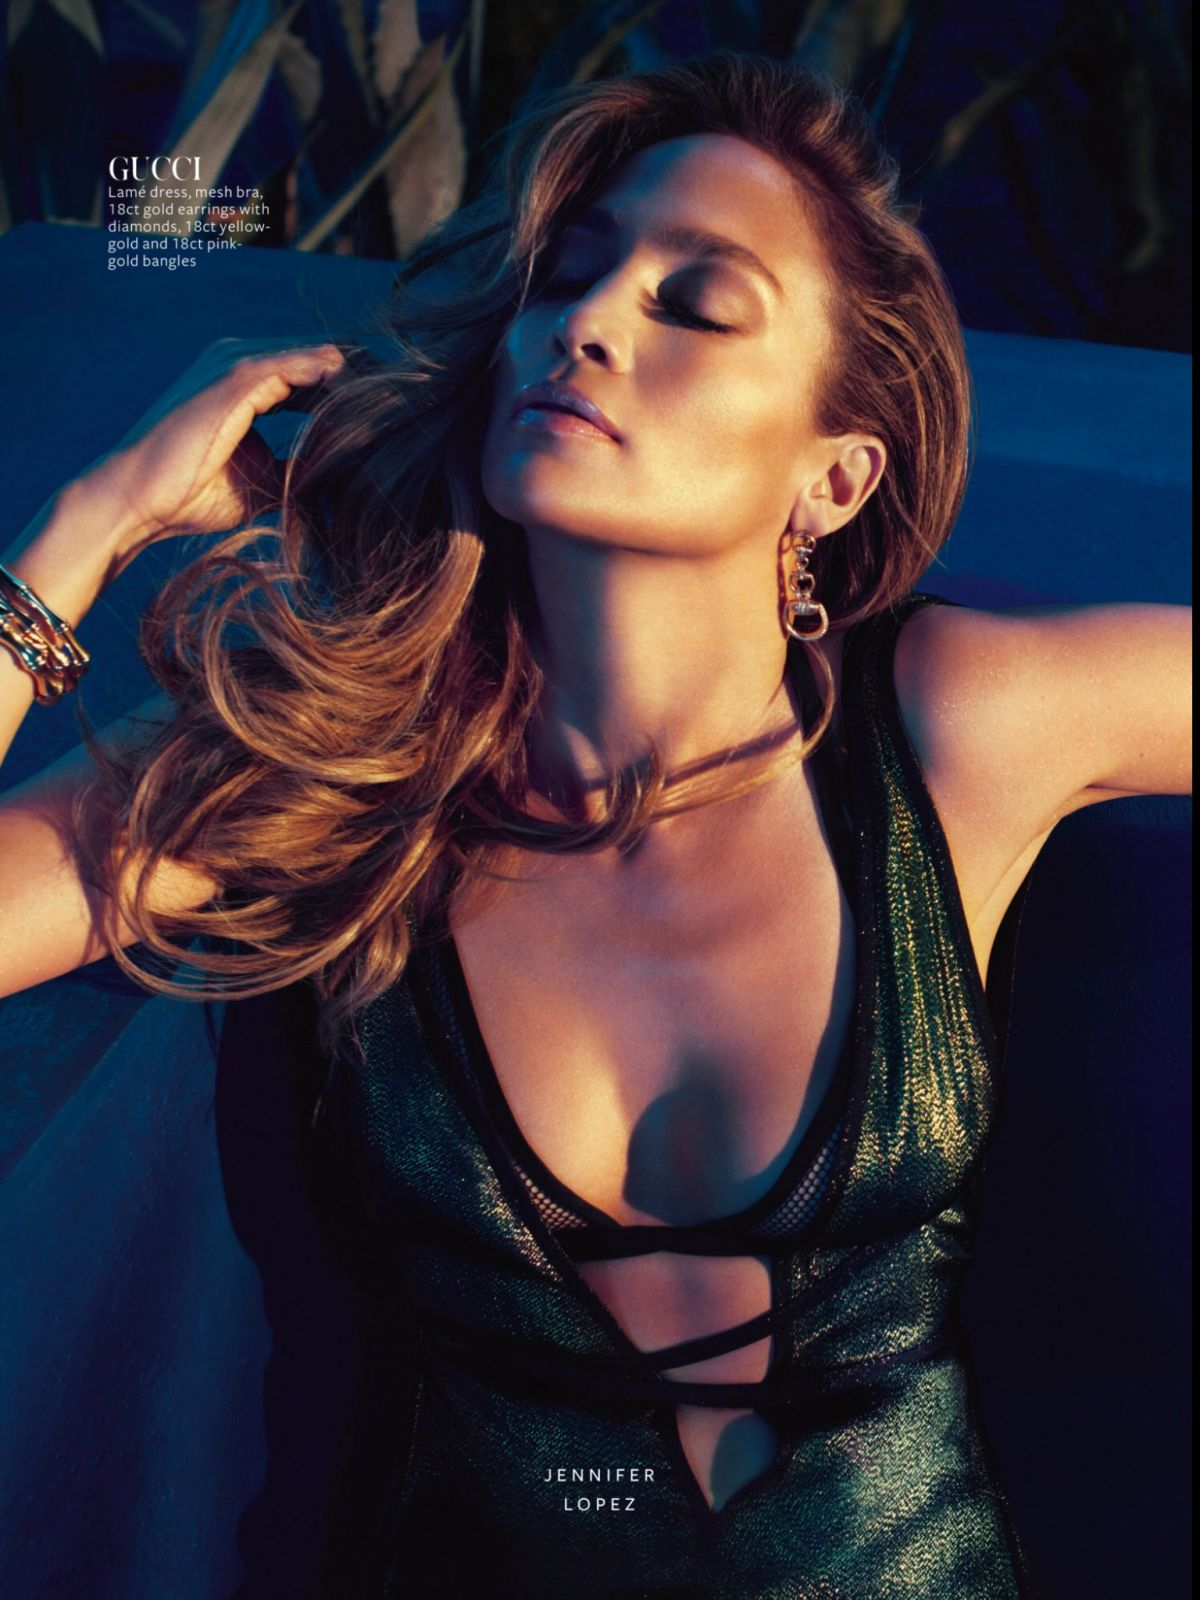 JENNIFER LOPEZ in Instyle Magazine, April 2014 Issue